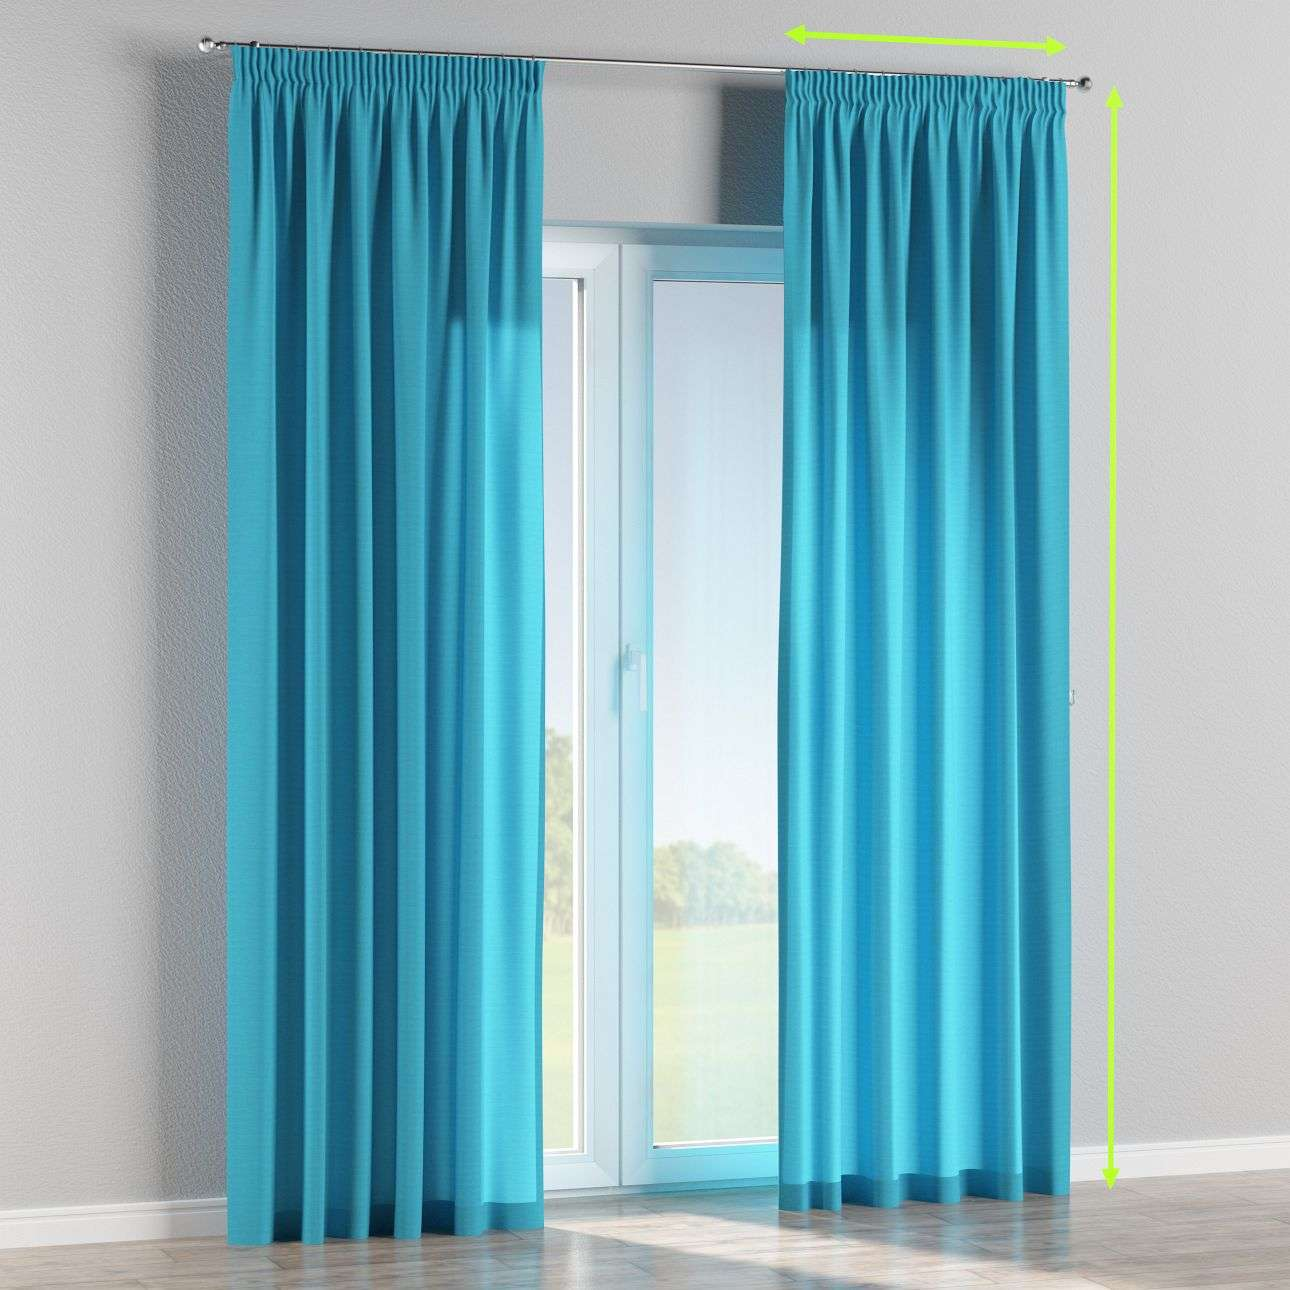 Pencil pleat lined curtains in collection Jupiter, fabric: 127-70